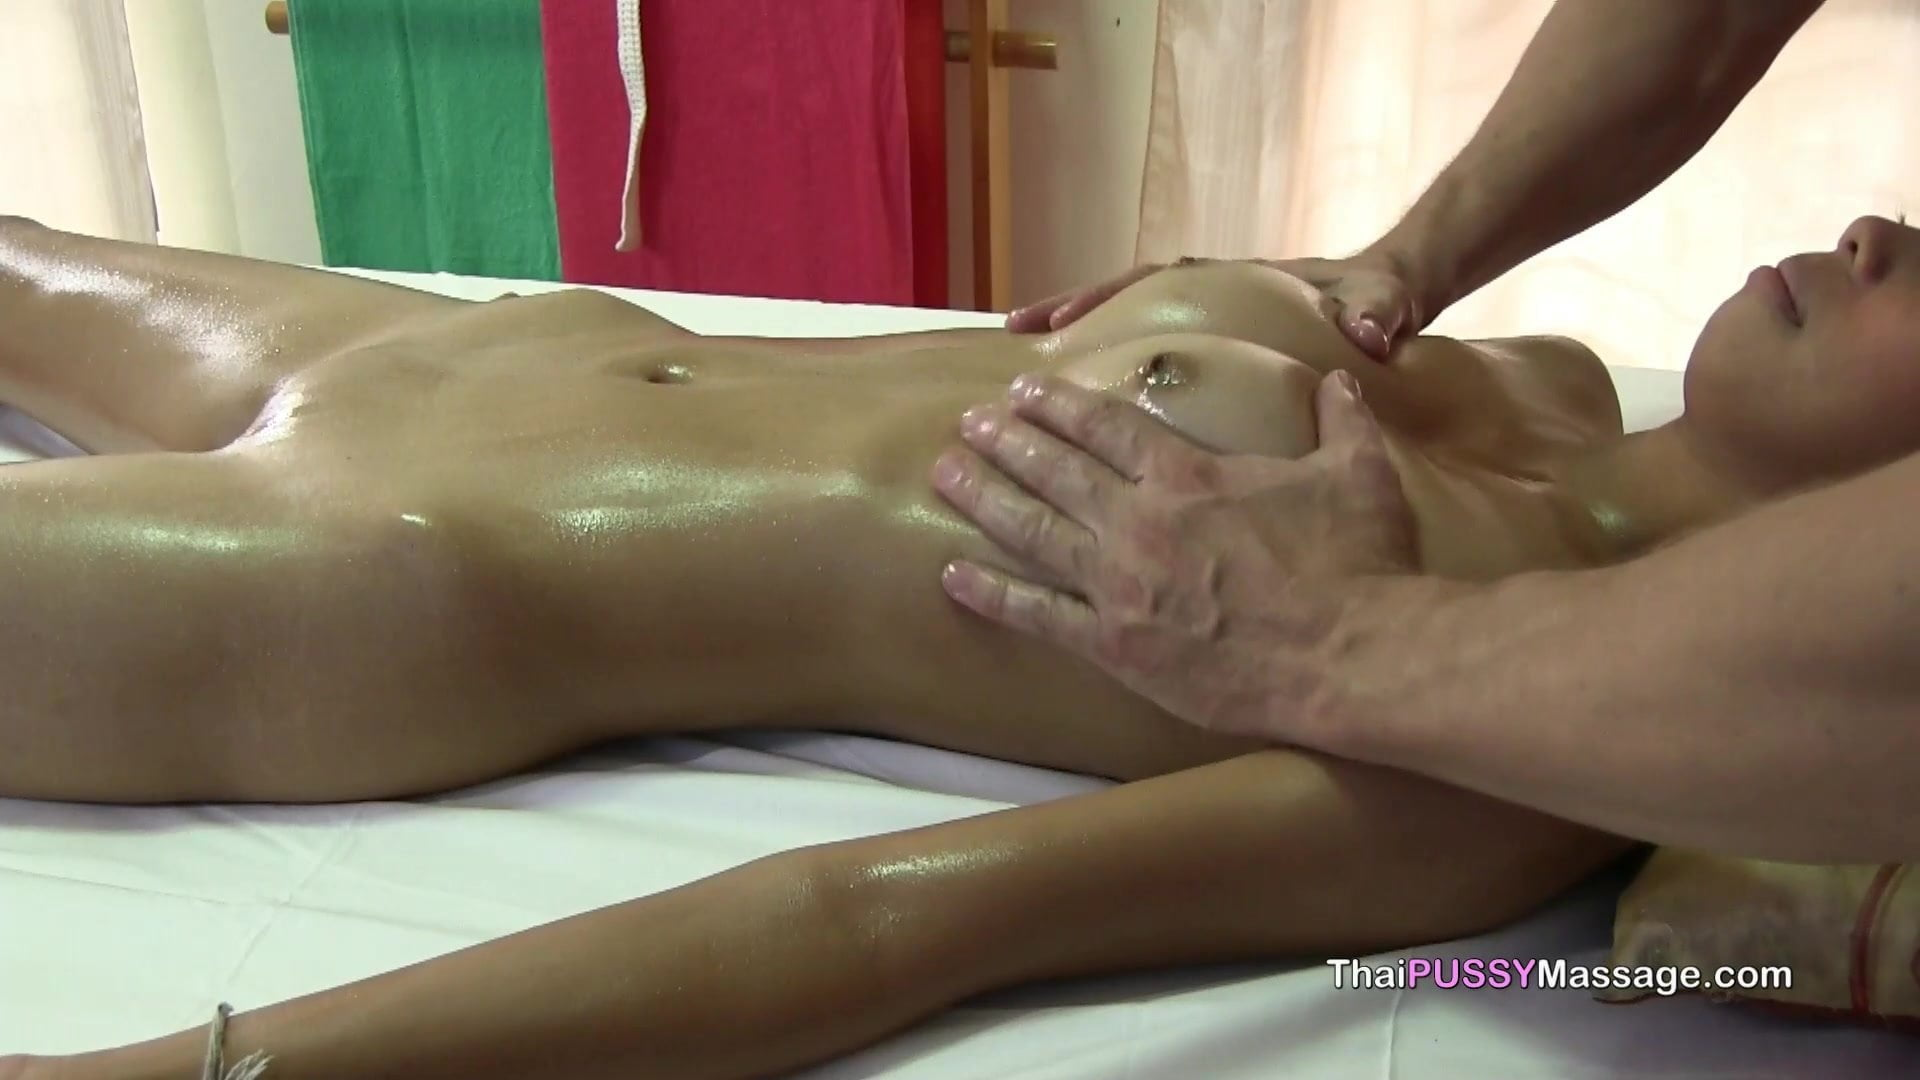 younger thai woman receives blissful ending oil therapeutic massage